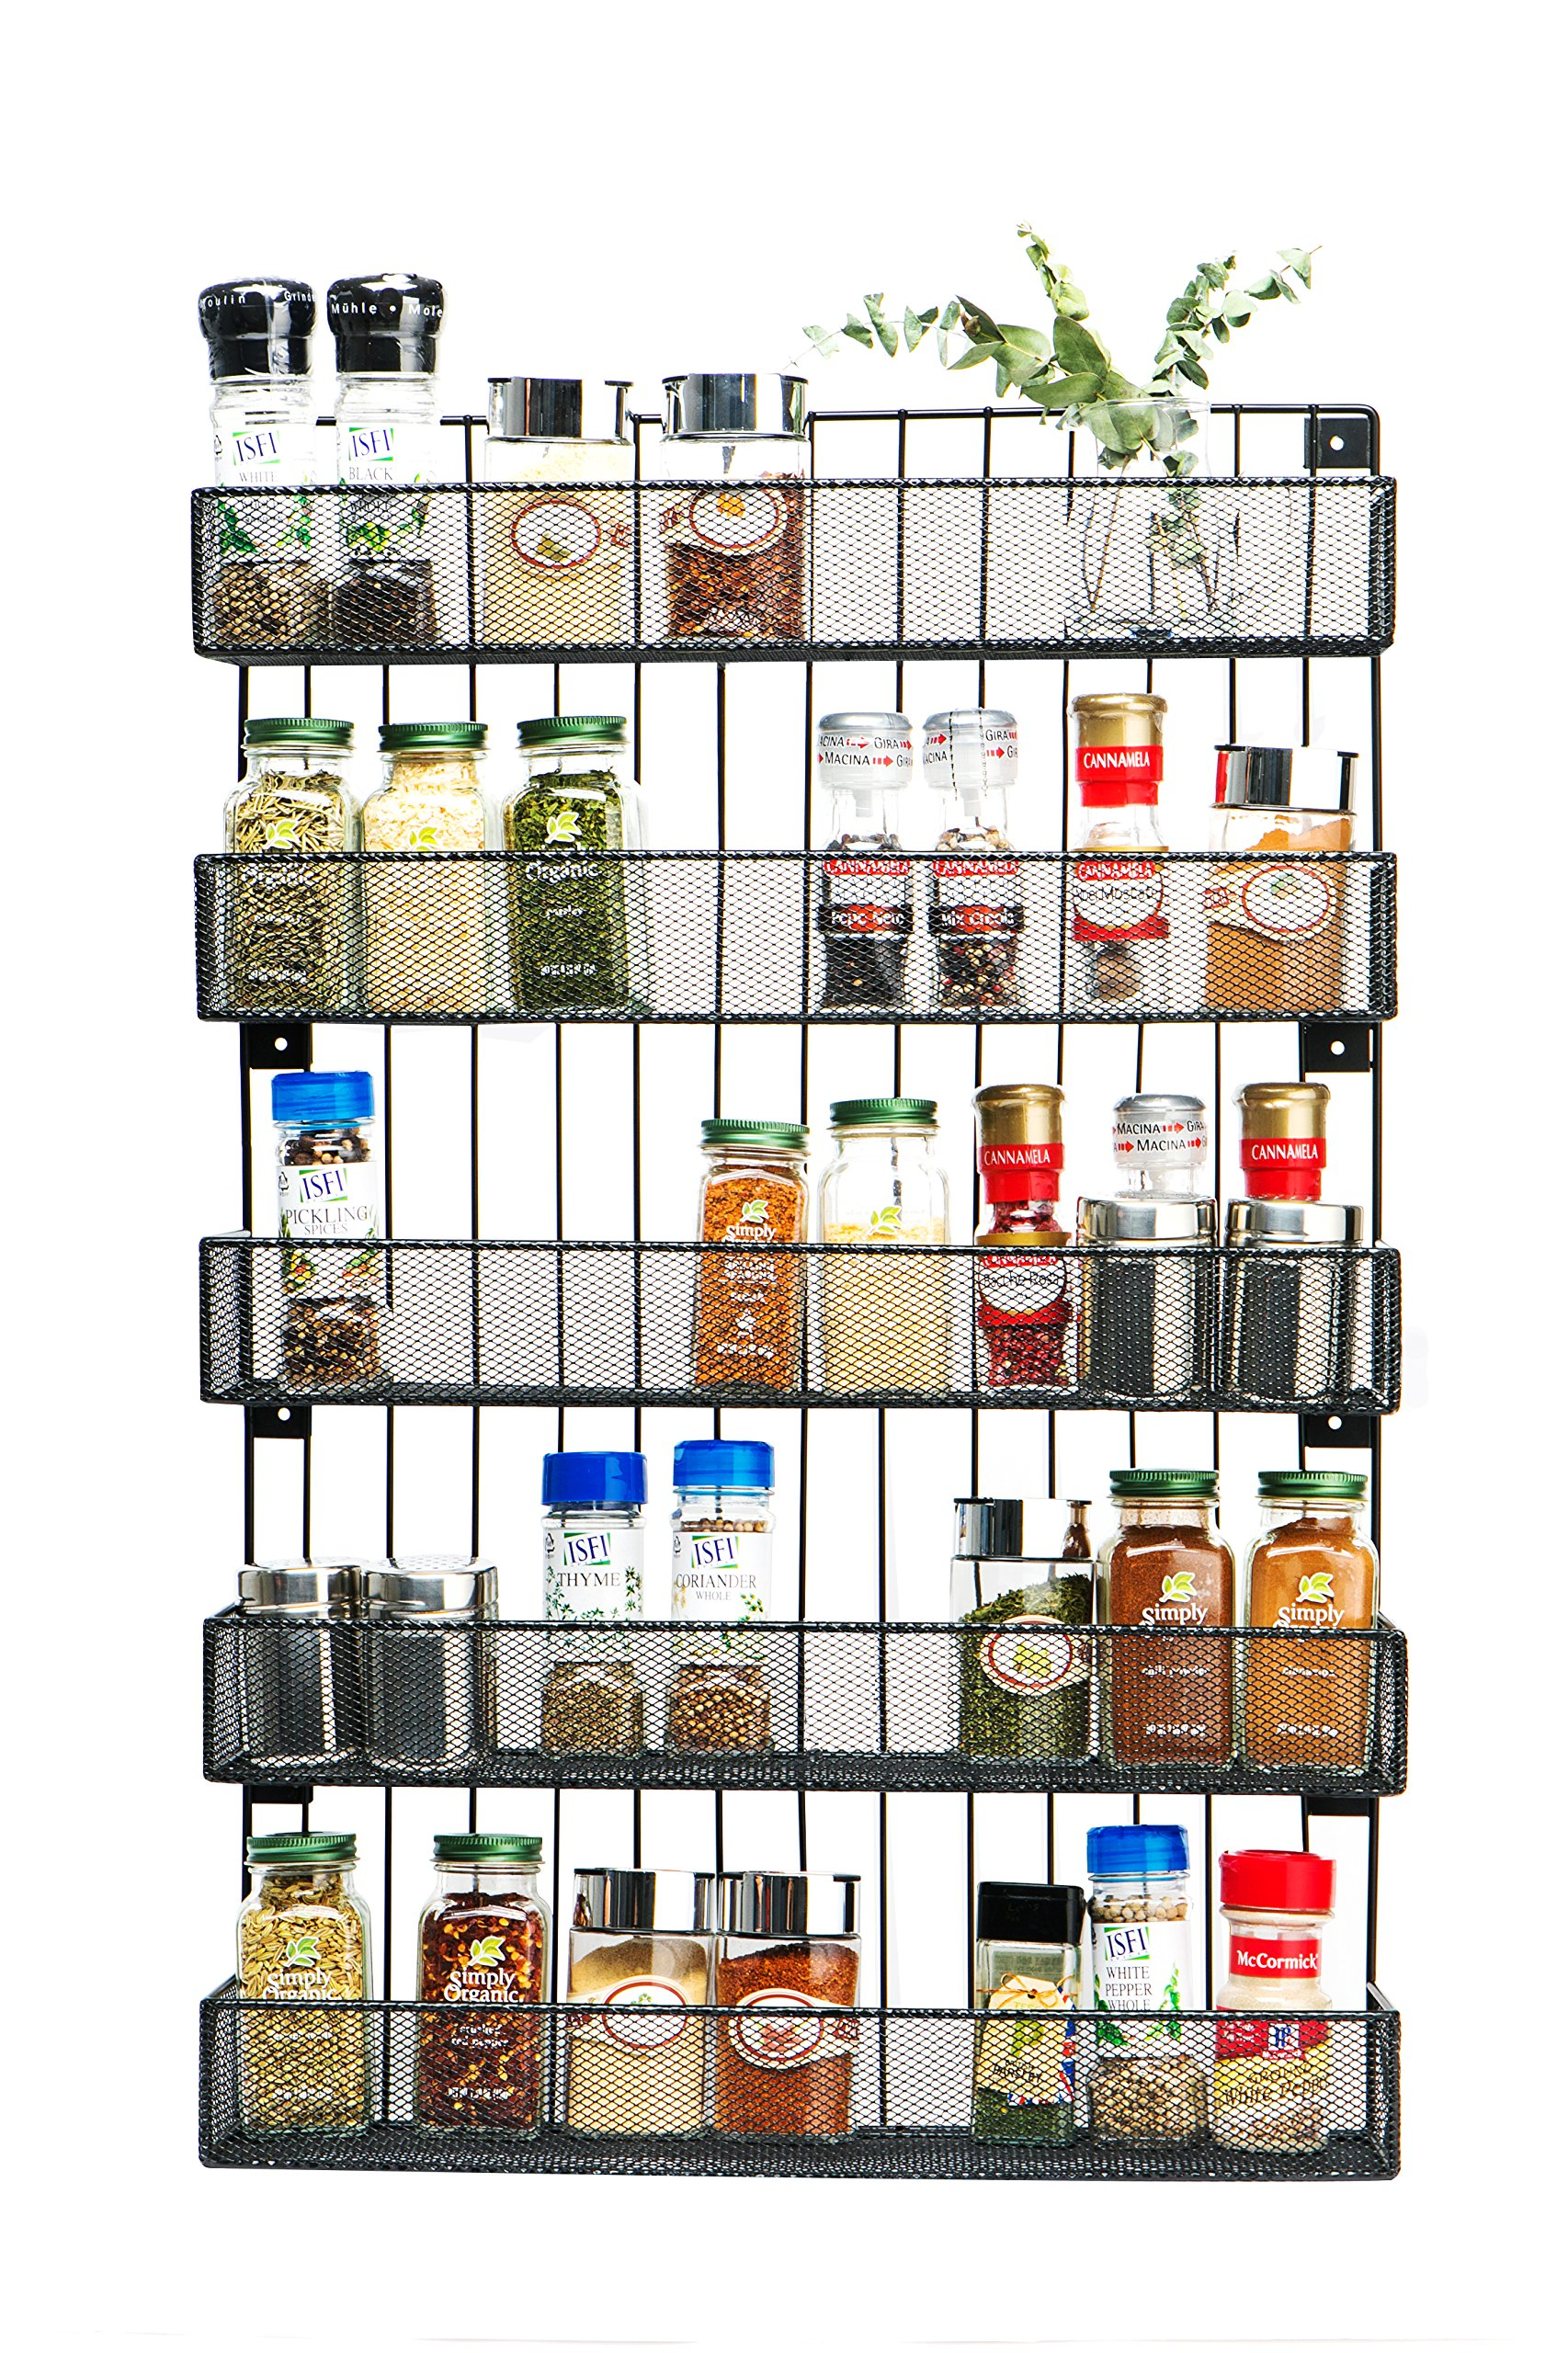 JackCubeDesign Wall Mount Spice Rack 5 Tier Kitchen Countertop Worktop Display Organizer Spice Bottles Holder Stand Shelves(17.6 x 4.1 x 26.7 inches) - :MK419A by JackCubeDesign